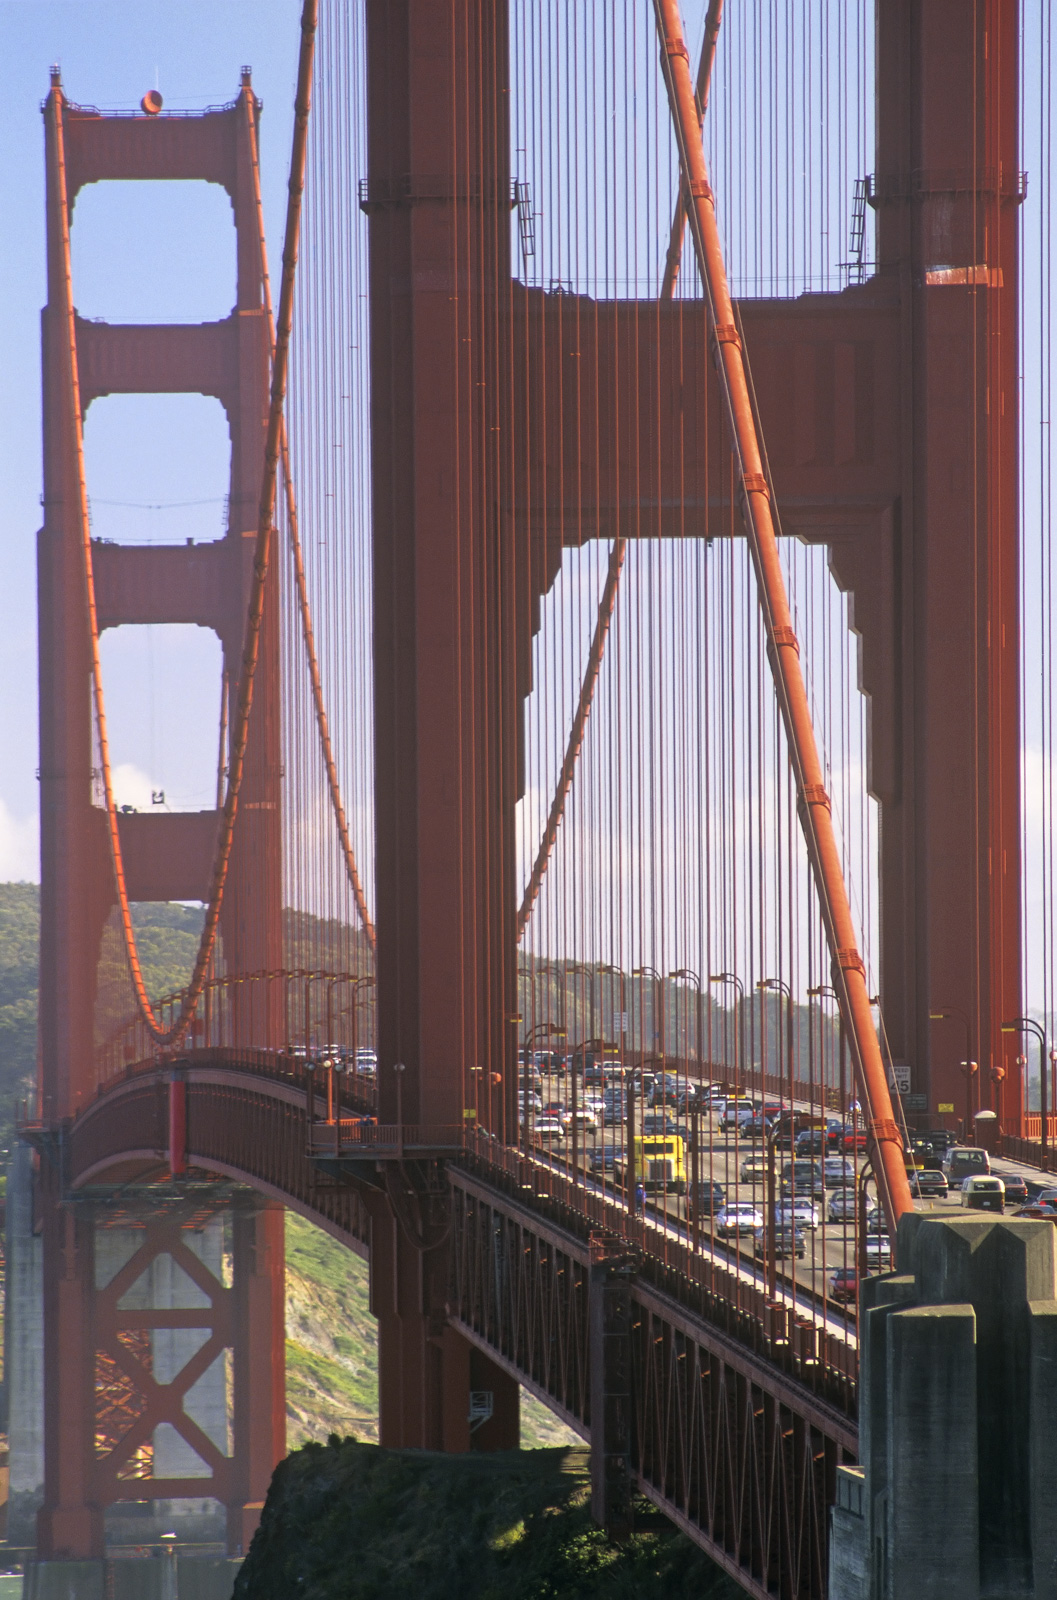 I used a long lens to compress the length of the Golden Gate Bridge which just allowed me to fit the two towers that span the...